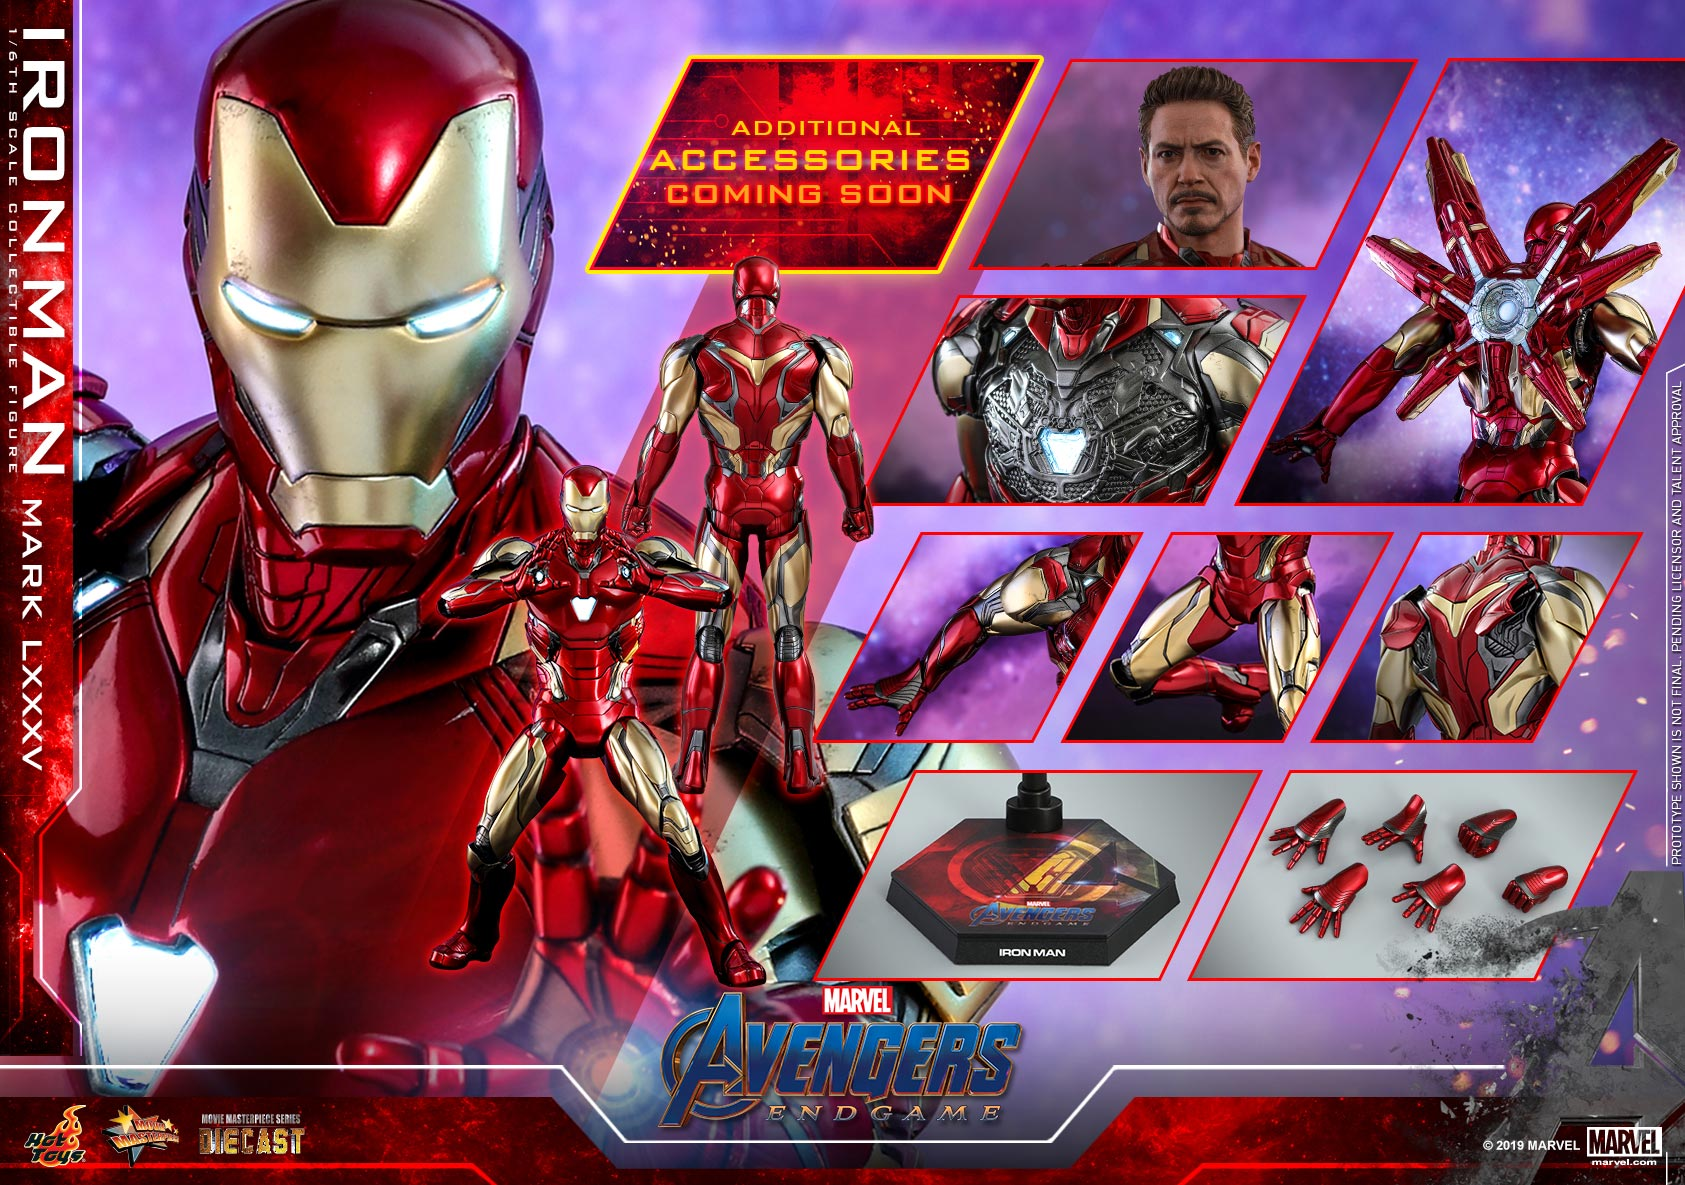 Hot-Toys---Avengers-4---Iron-Man-Mark-LXXXV-collectible-figure_PR21